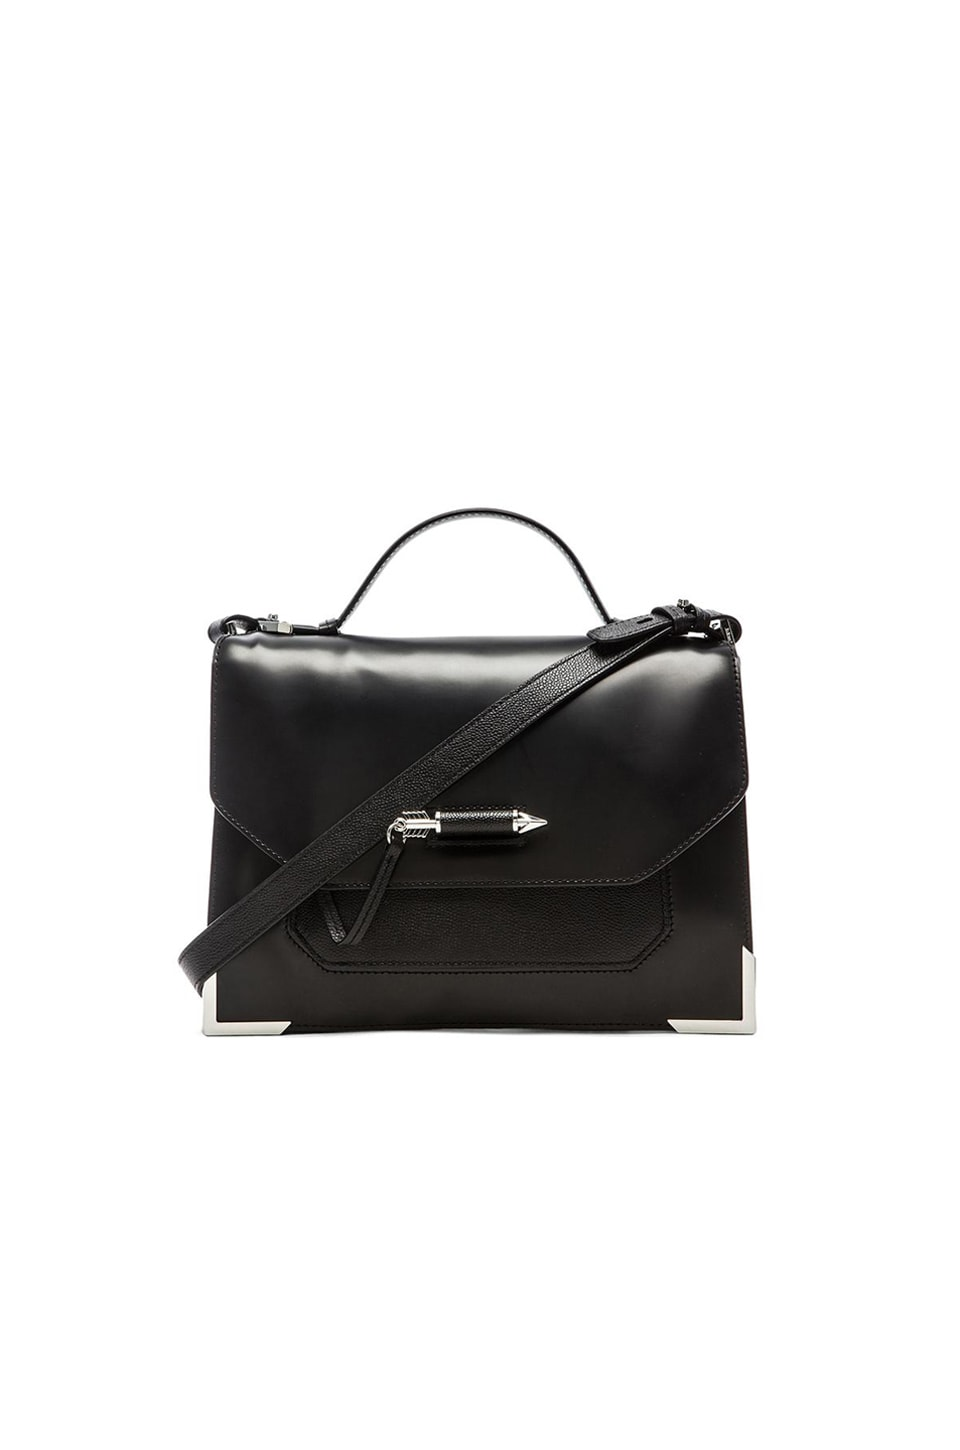 Mackage Jori Satchel in Black